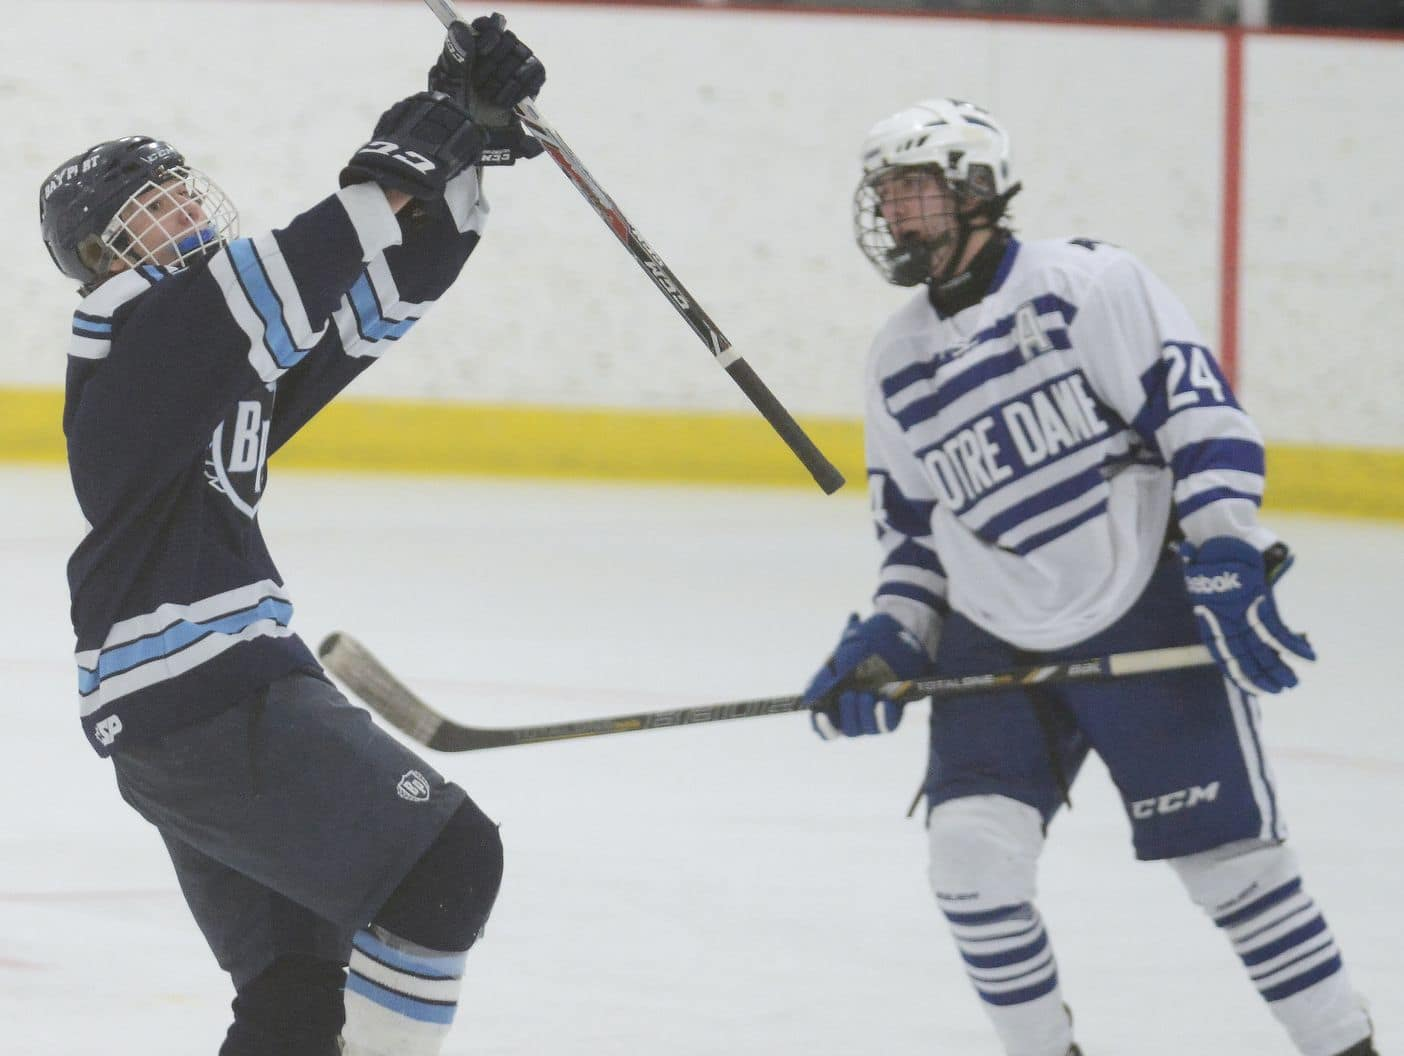 Bay Port's Austin Mikesch celebrates a game-winning goal against Green Bay Notre Dame in 2015. Mikesch surpassed 100 career points this season and earned Fox River Classic Conference player of the year honors.